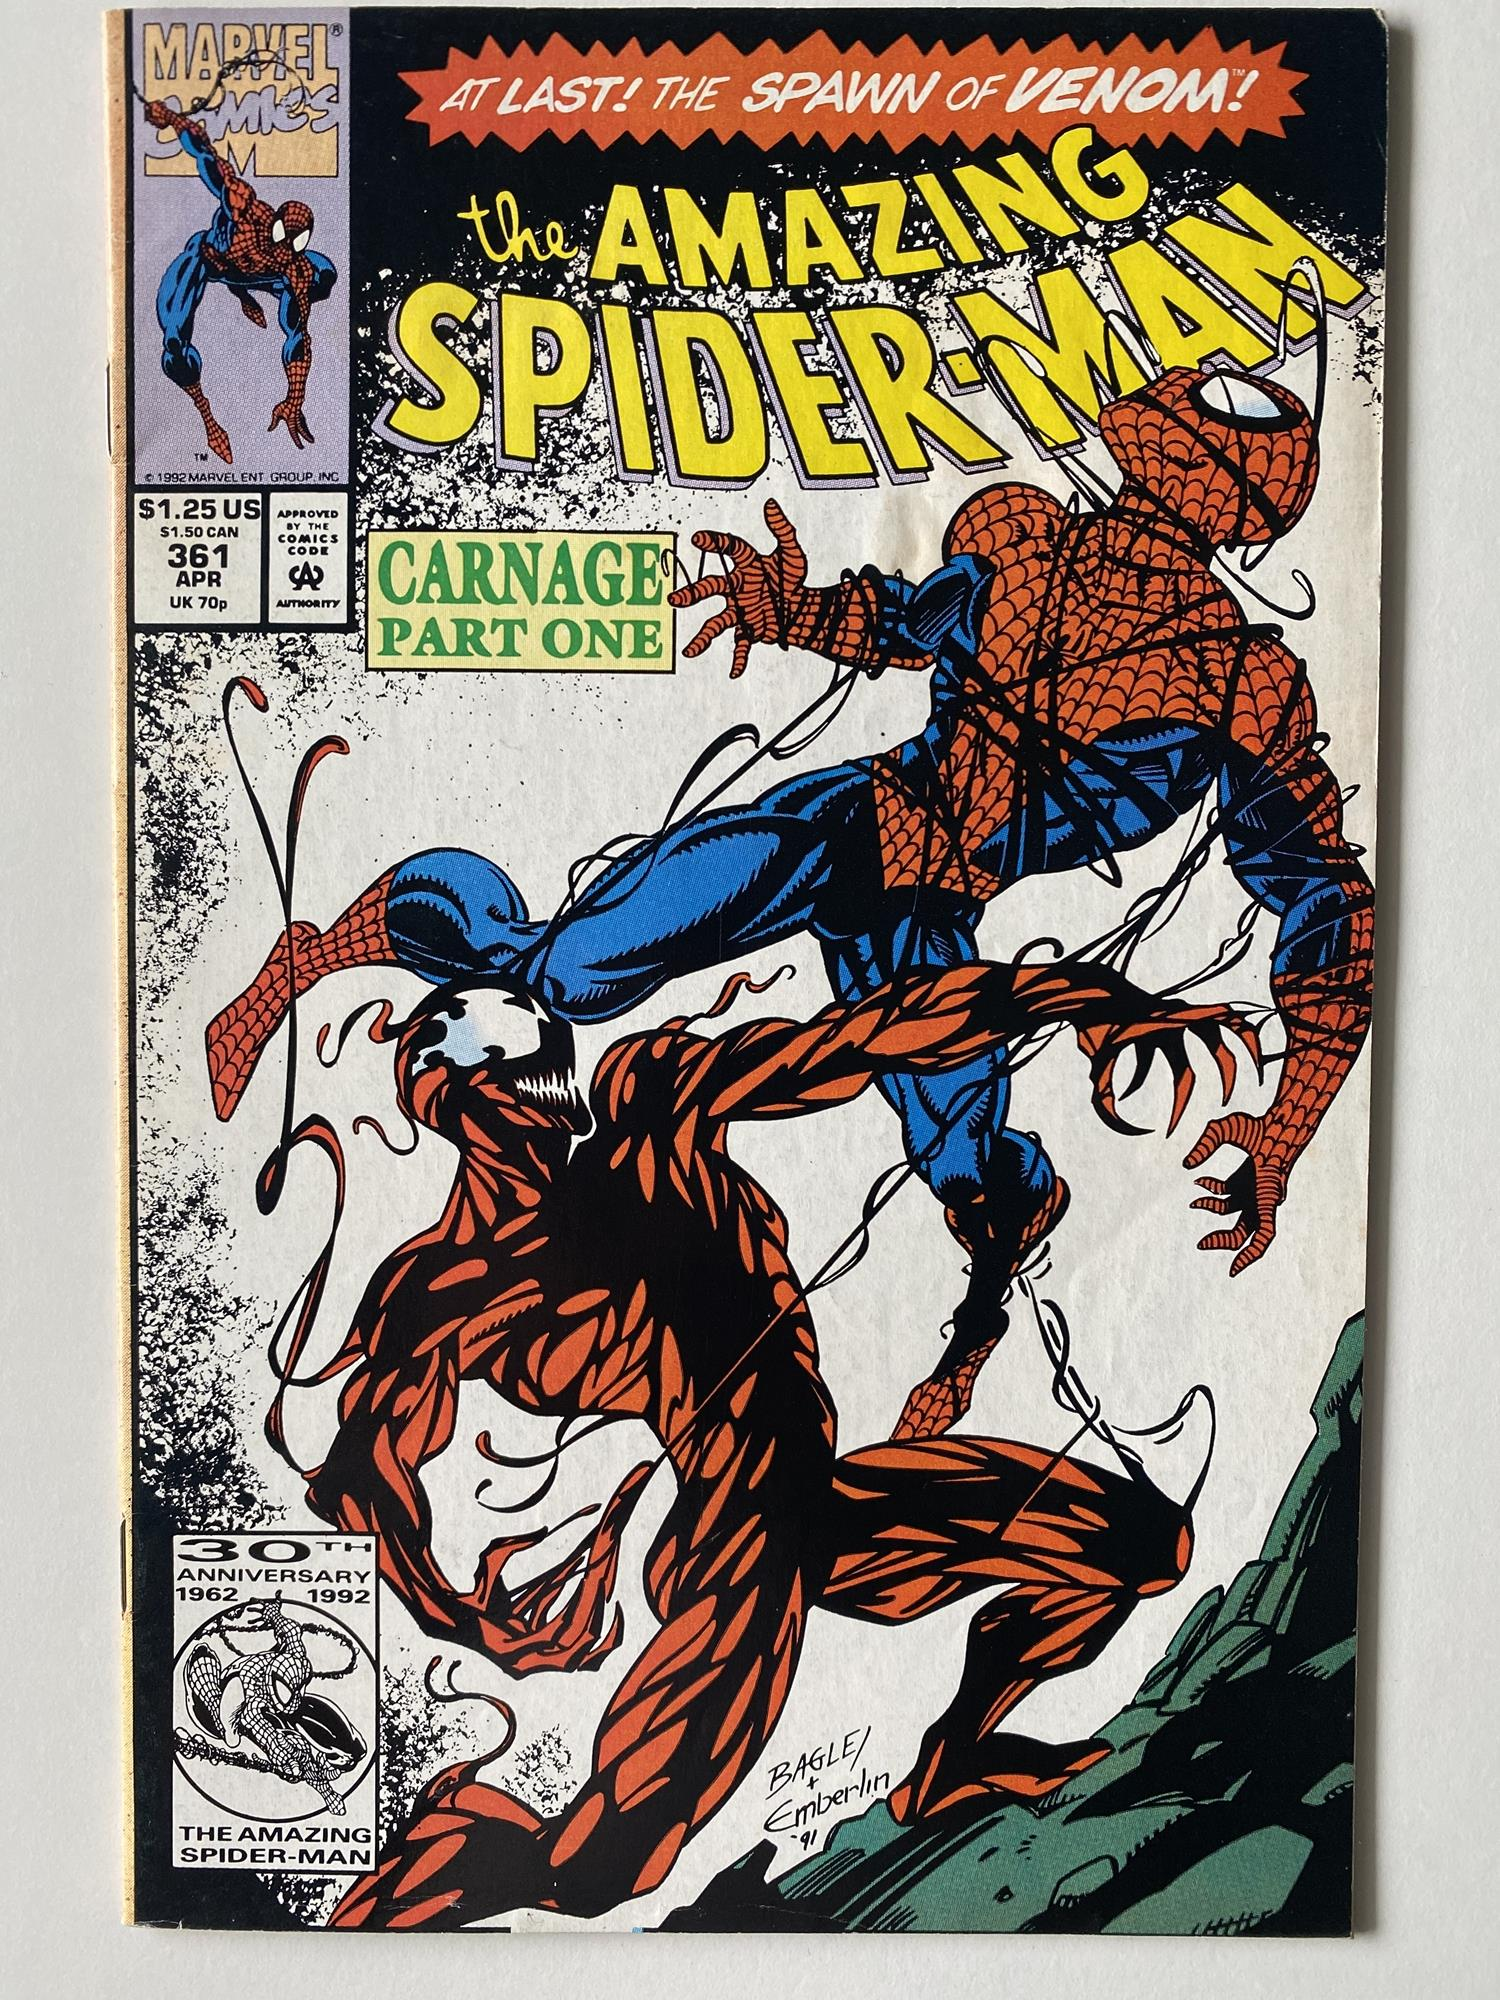 Lot 21 - AMAZING SPIDER-MAN # 361 (1992 - MARVEL - Cents/Pence Copy) - First full appearance of Carnage (